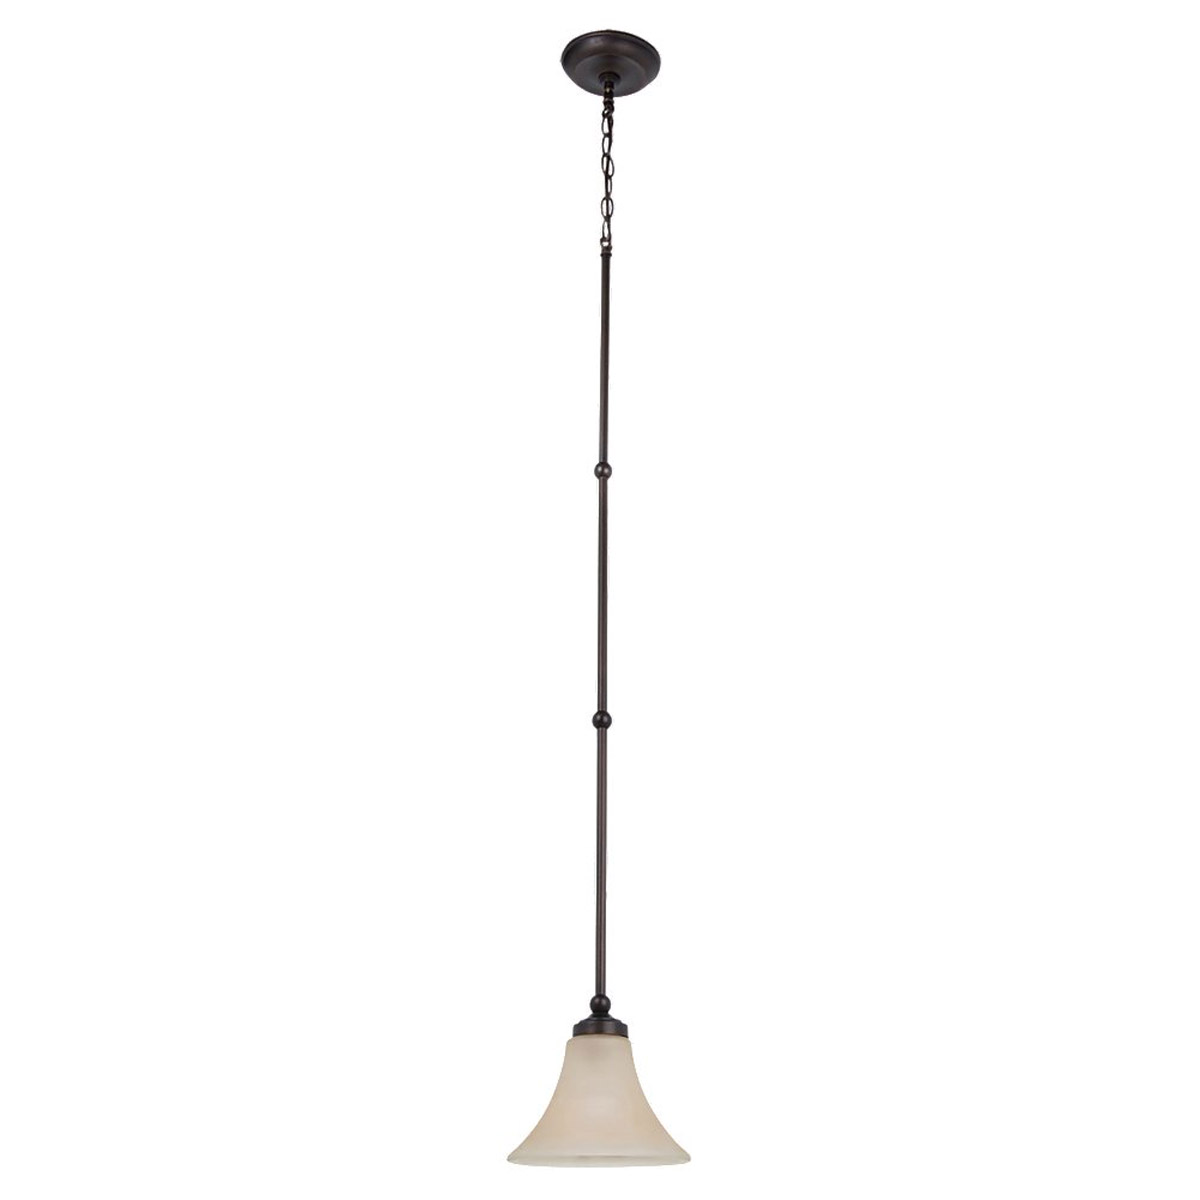 Sea Gull Lighting Montreal 1 Light Mini Pendant in Burnt Sienna 61180-710